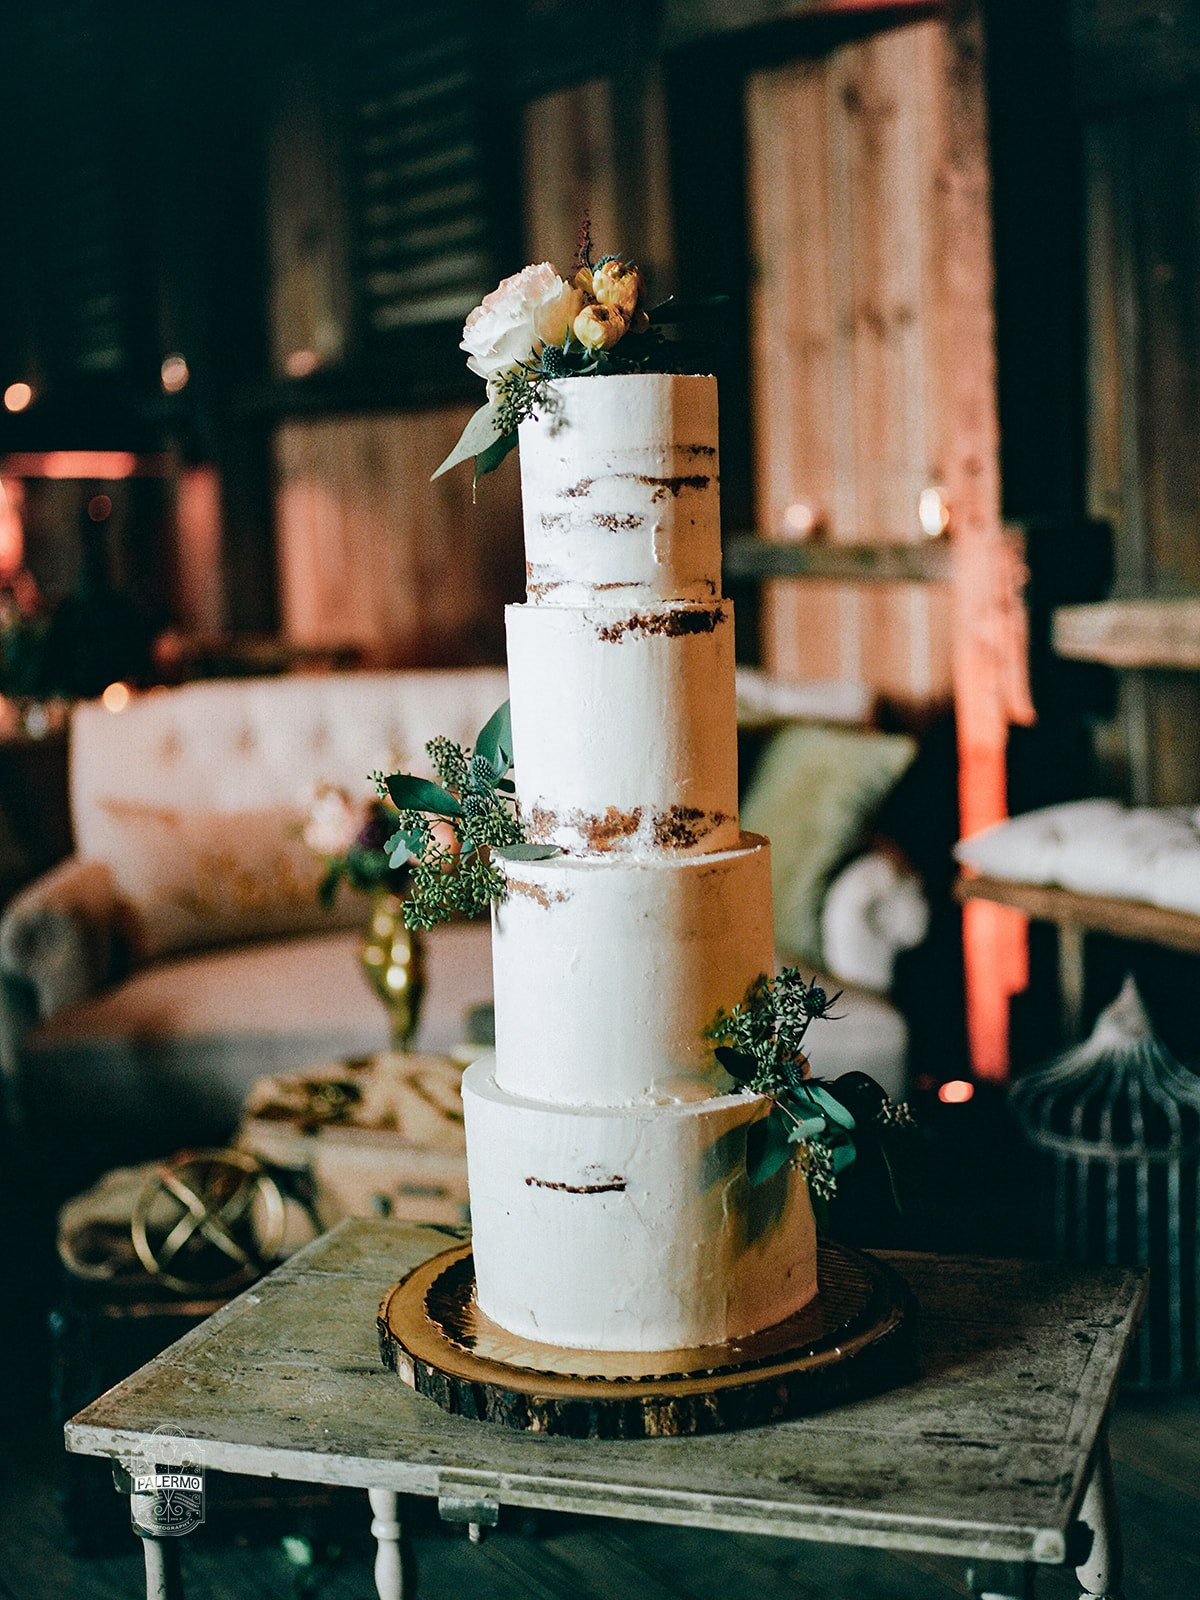 Rustic wedding cake design for fall barn wedding in Pittsburgh, PA planned by Exhale Events. Find more wedding inspiration at exhale-events.com!